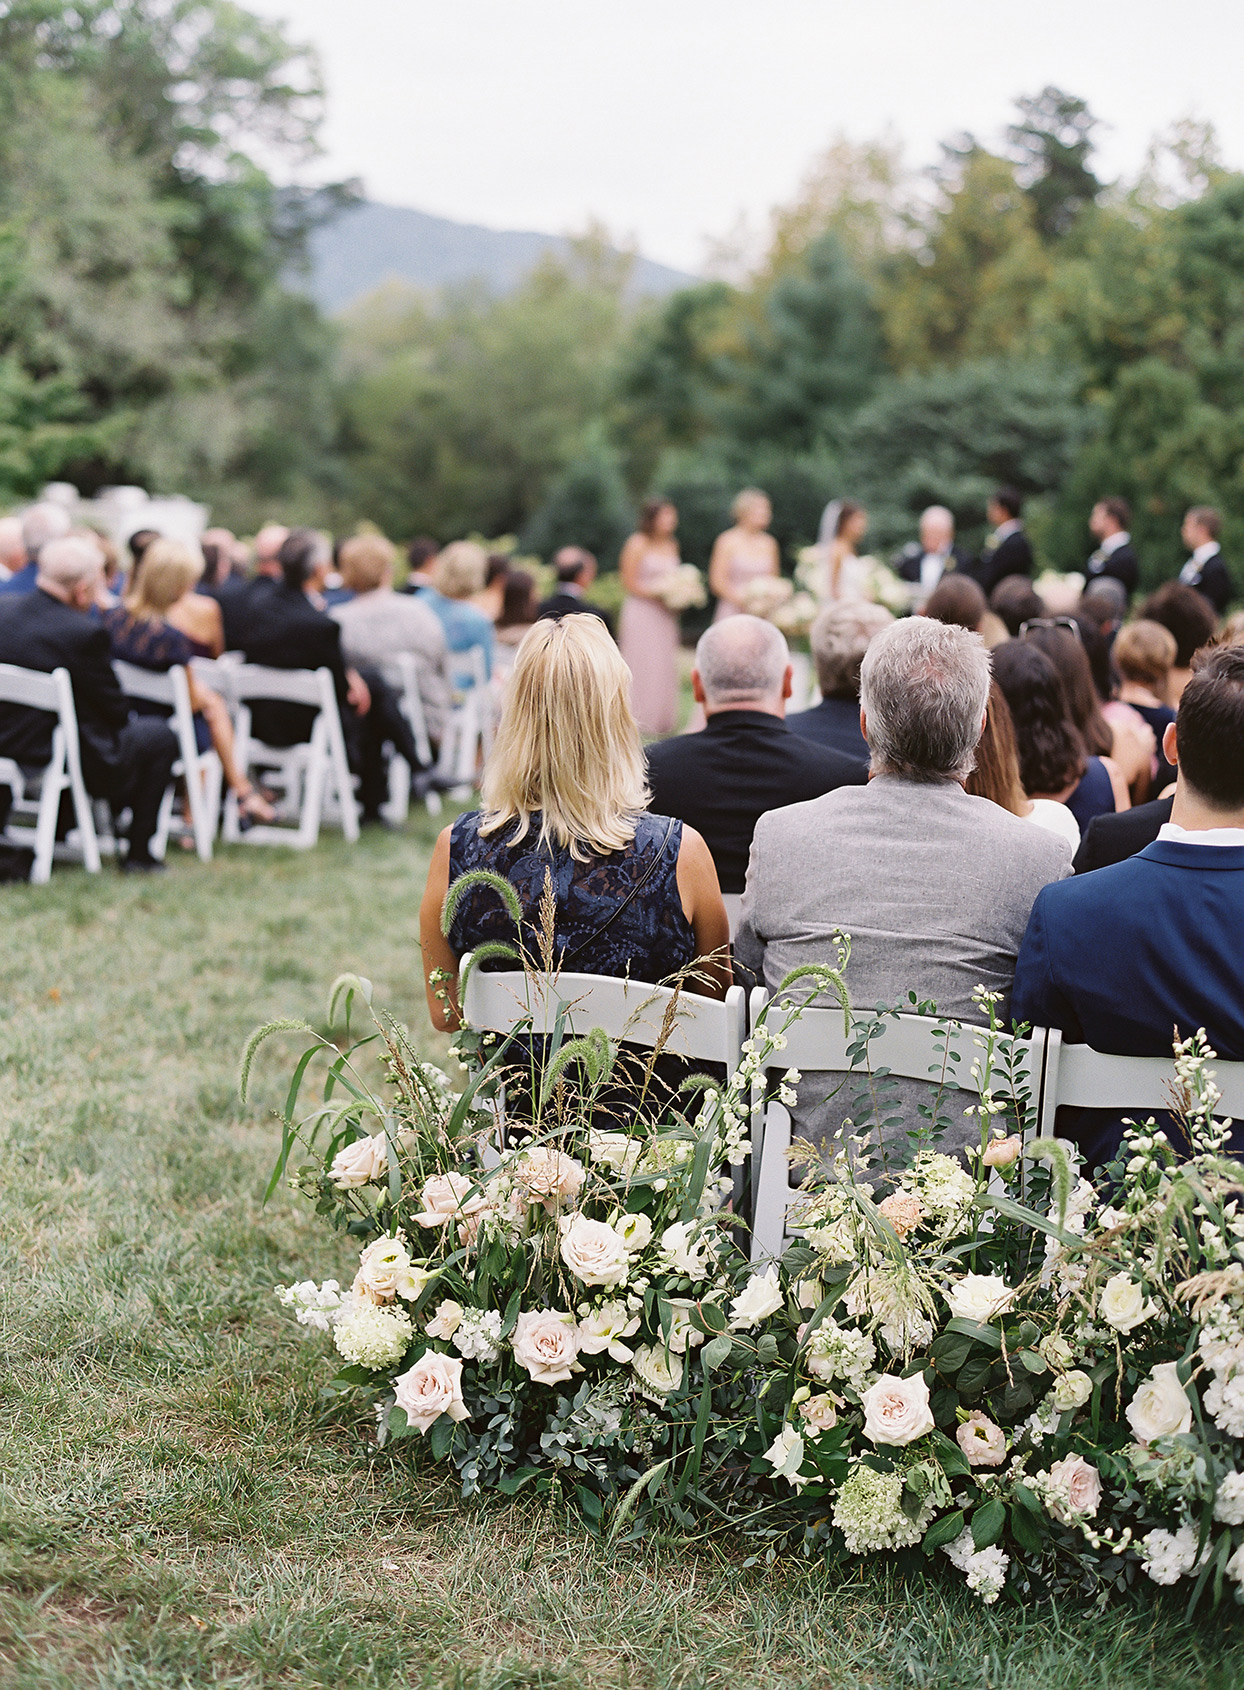 Flowers in the last row of a wedding ceremony